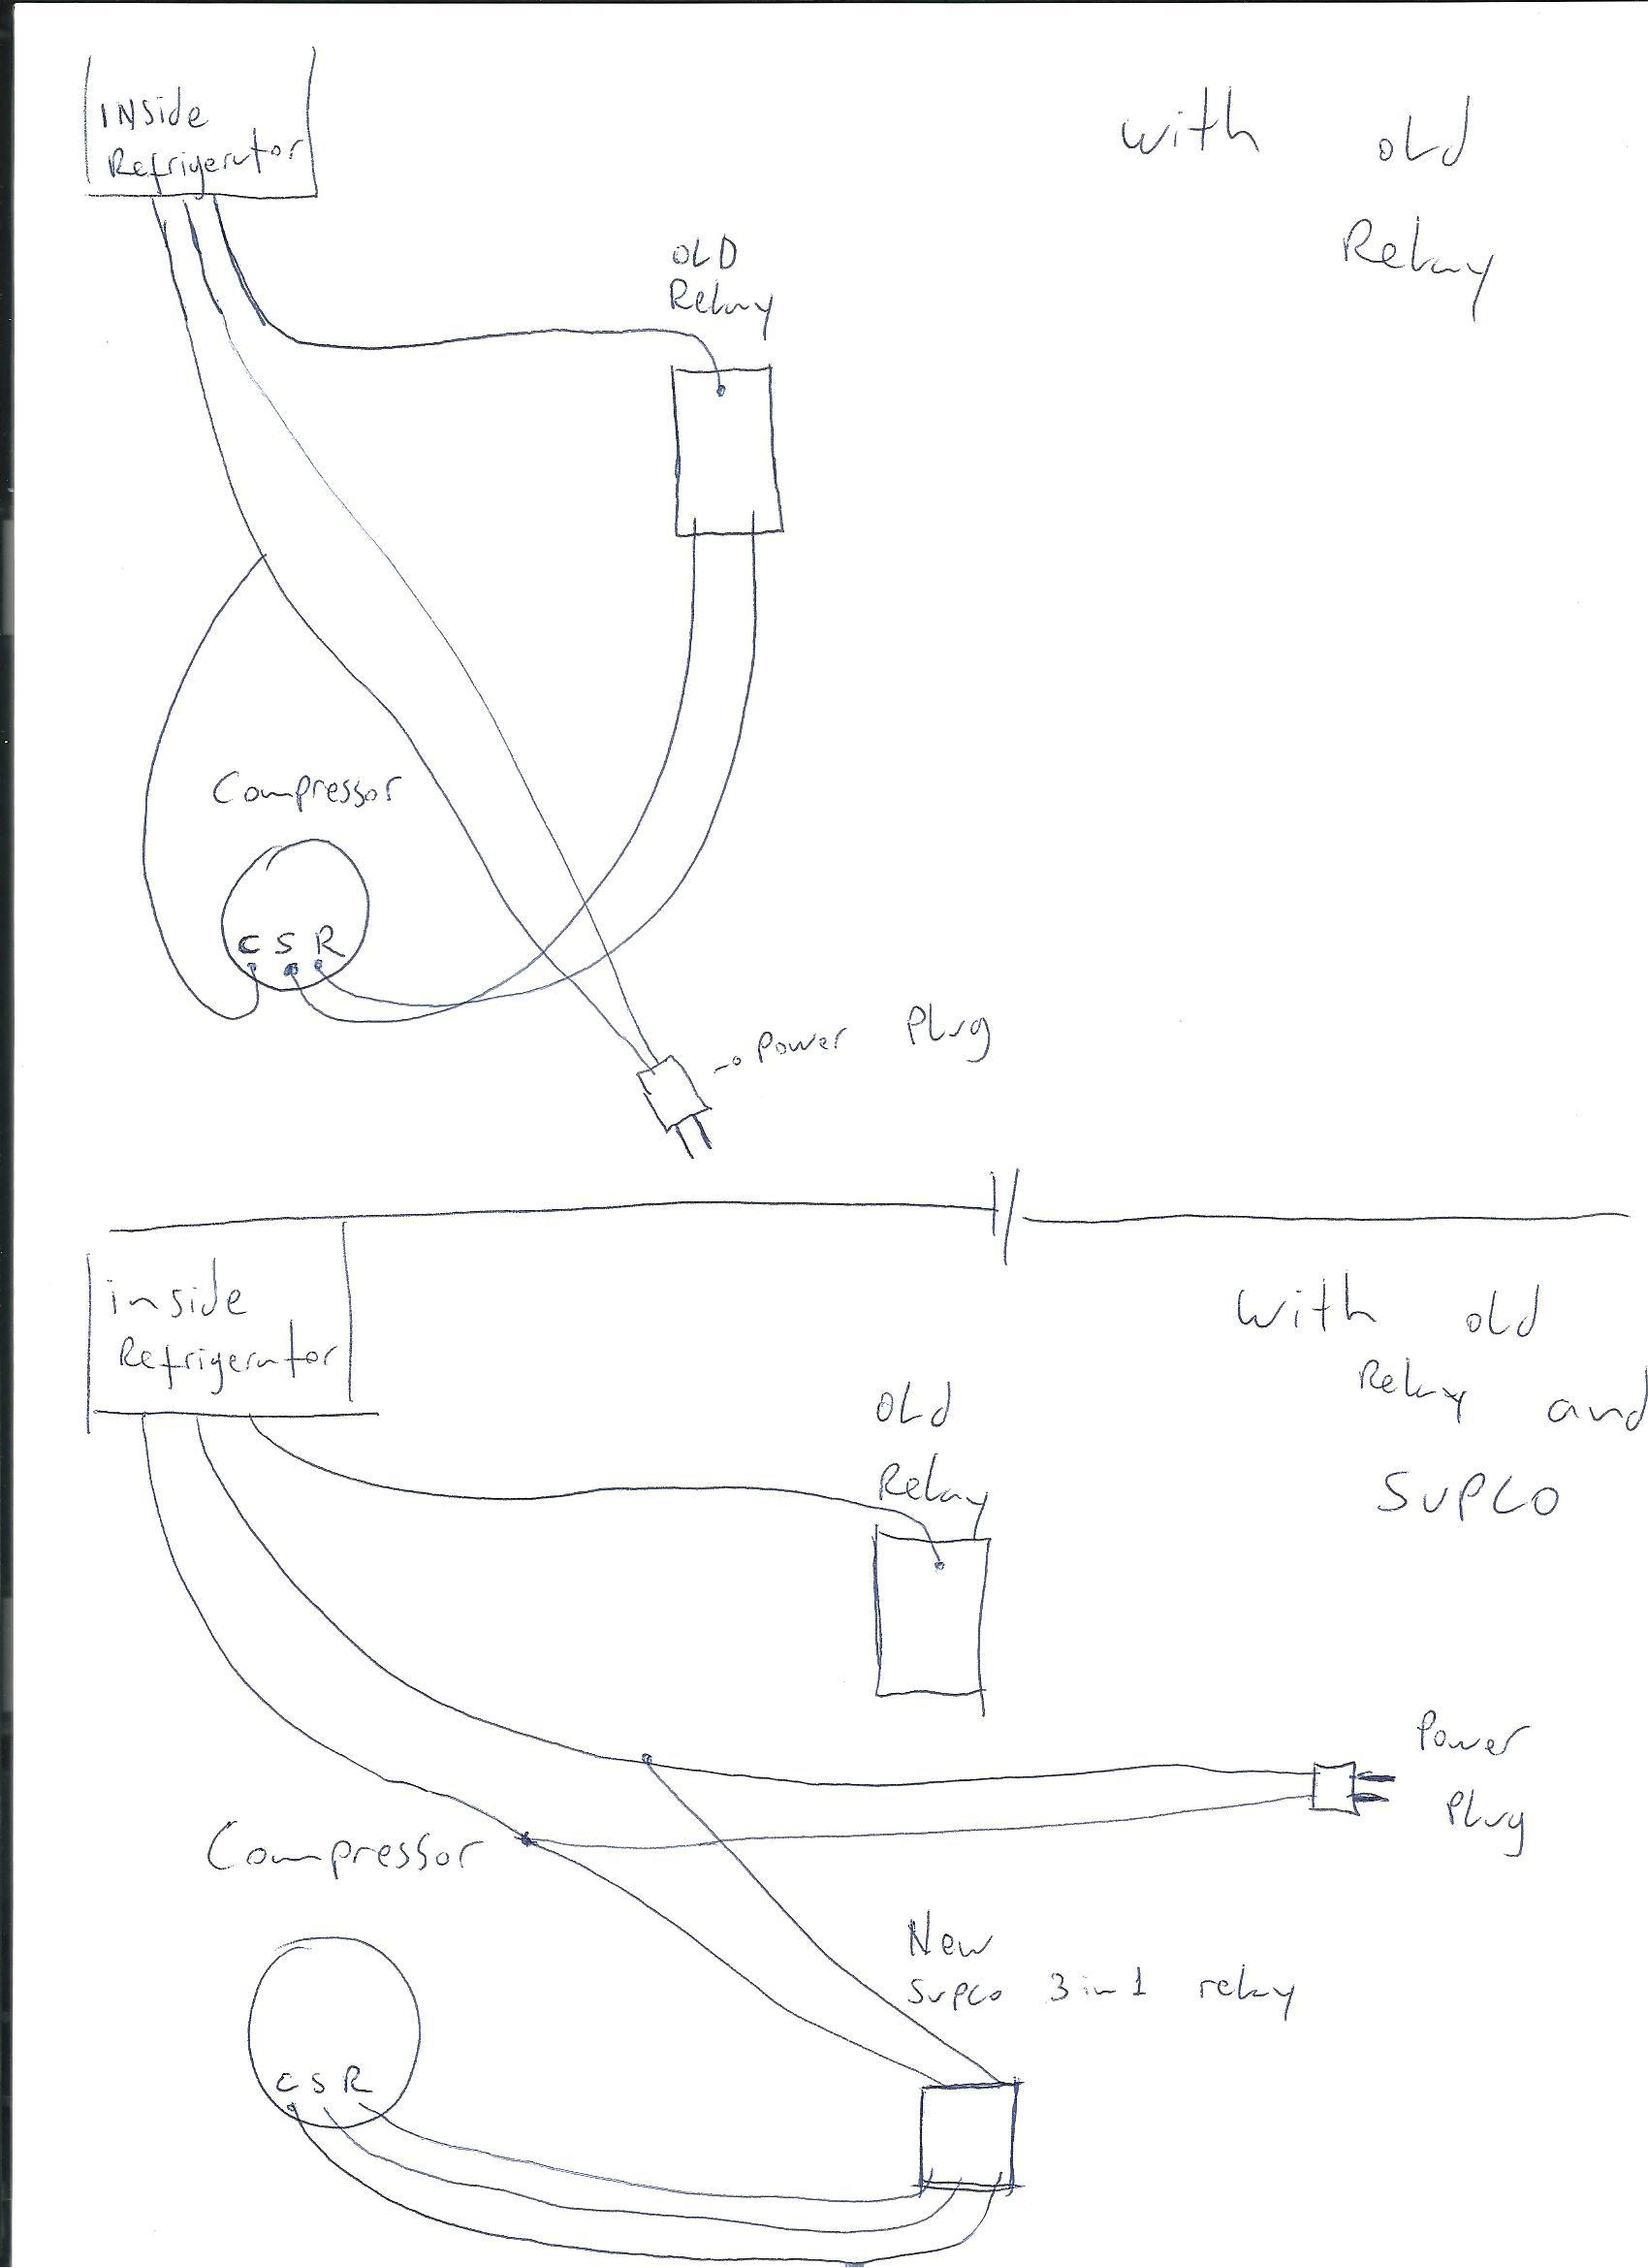 Supco Relay Wire Diagrams | Manual E-Books - Supco 3 In 1 Wiring Diagram